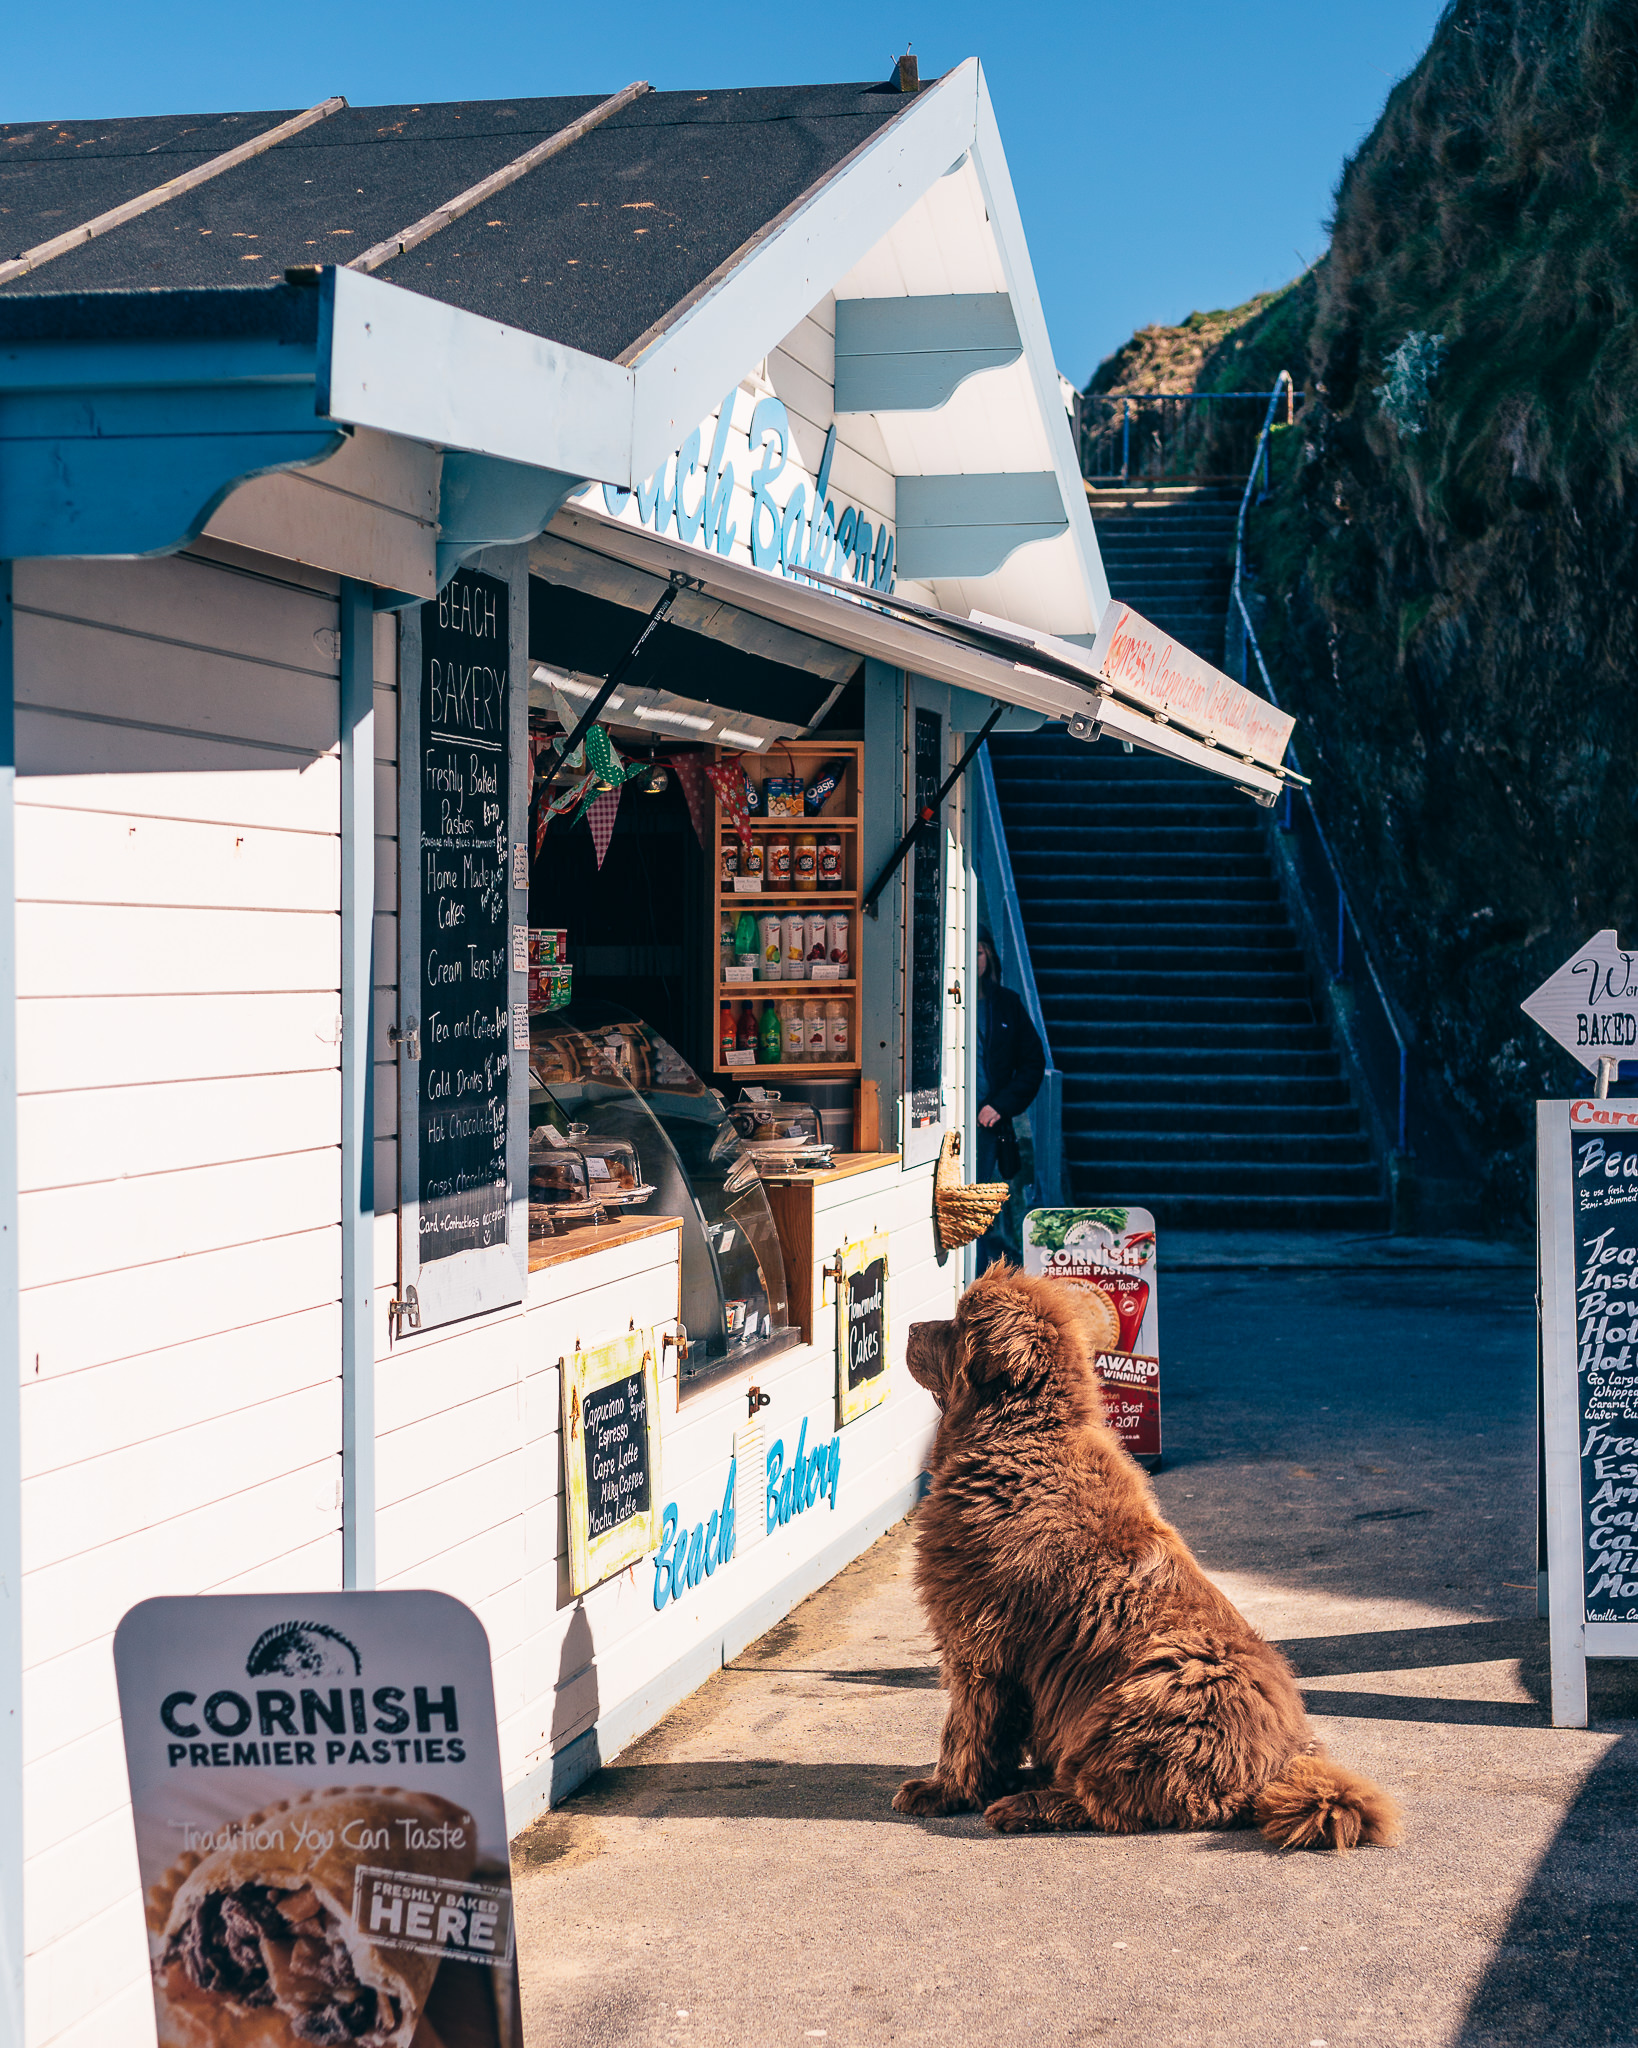 Cornish pasties are all the rage in Cornwall (and in turn, Newquay). People and dogs line up everywhere for 'em.